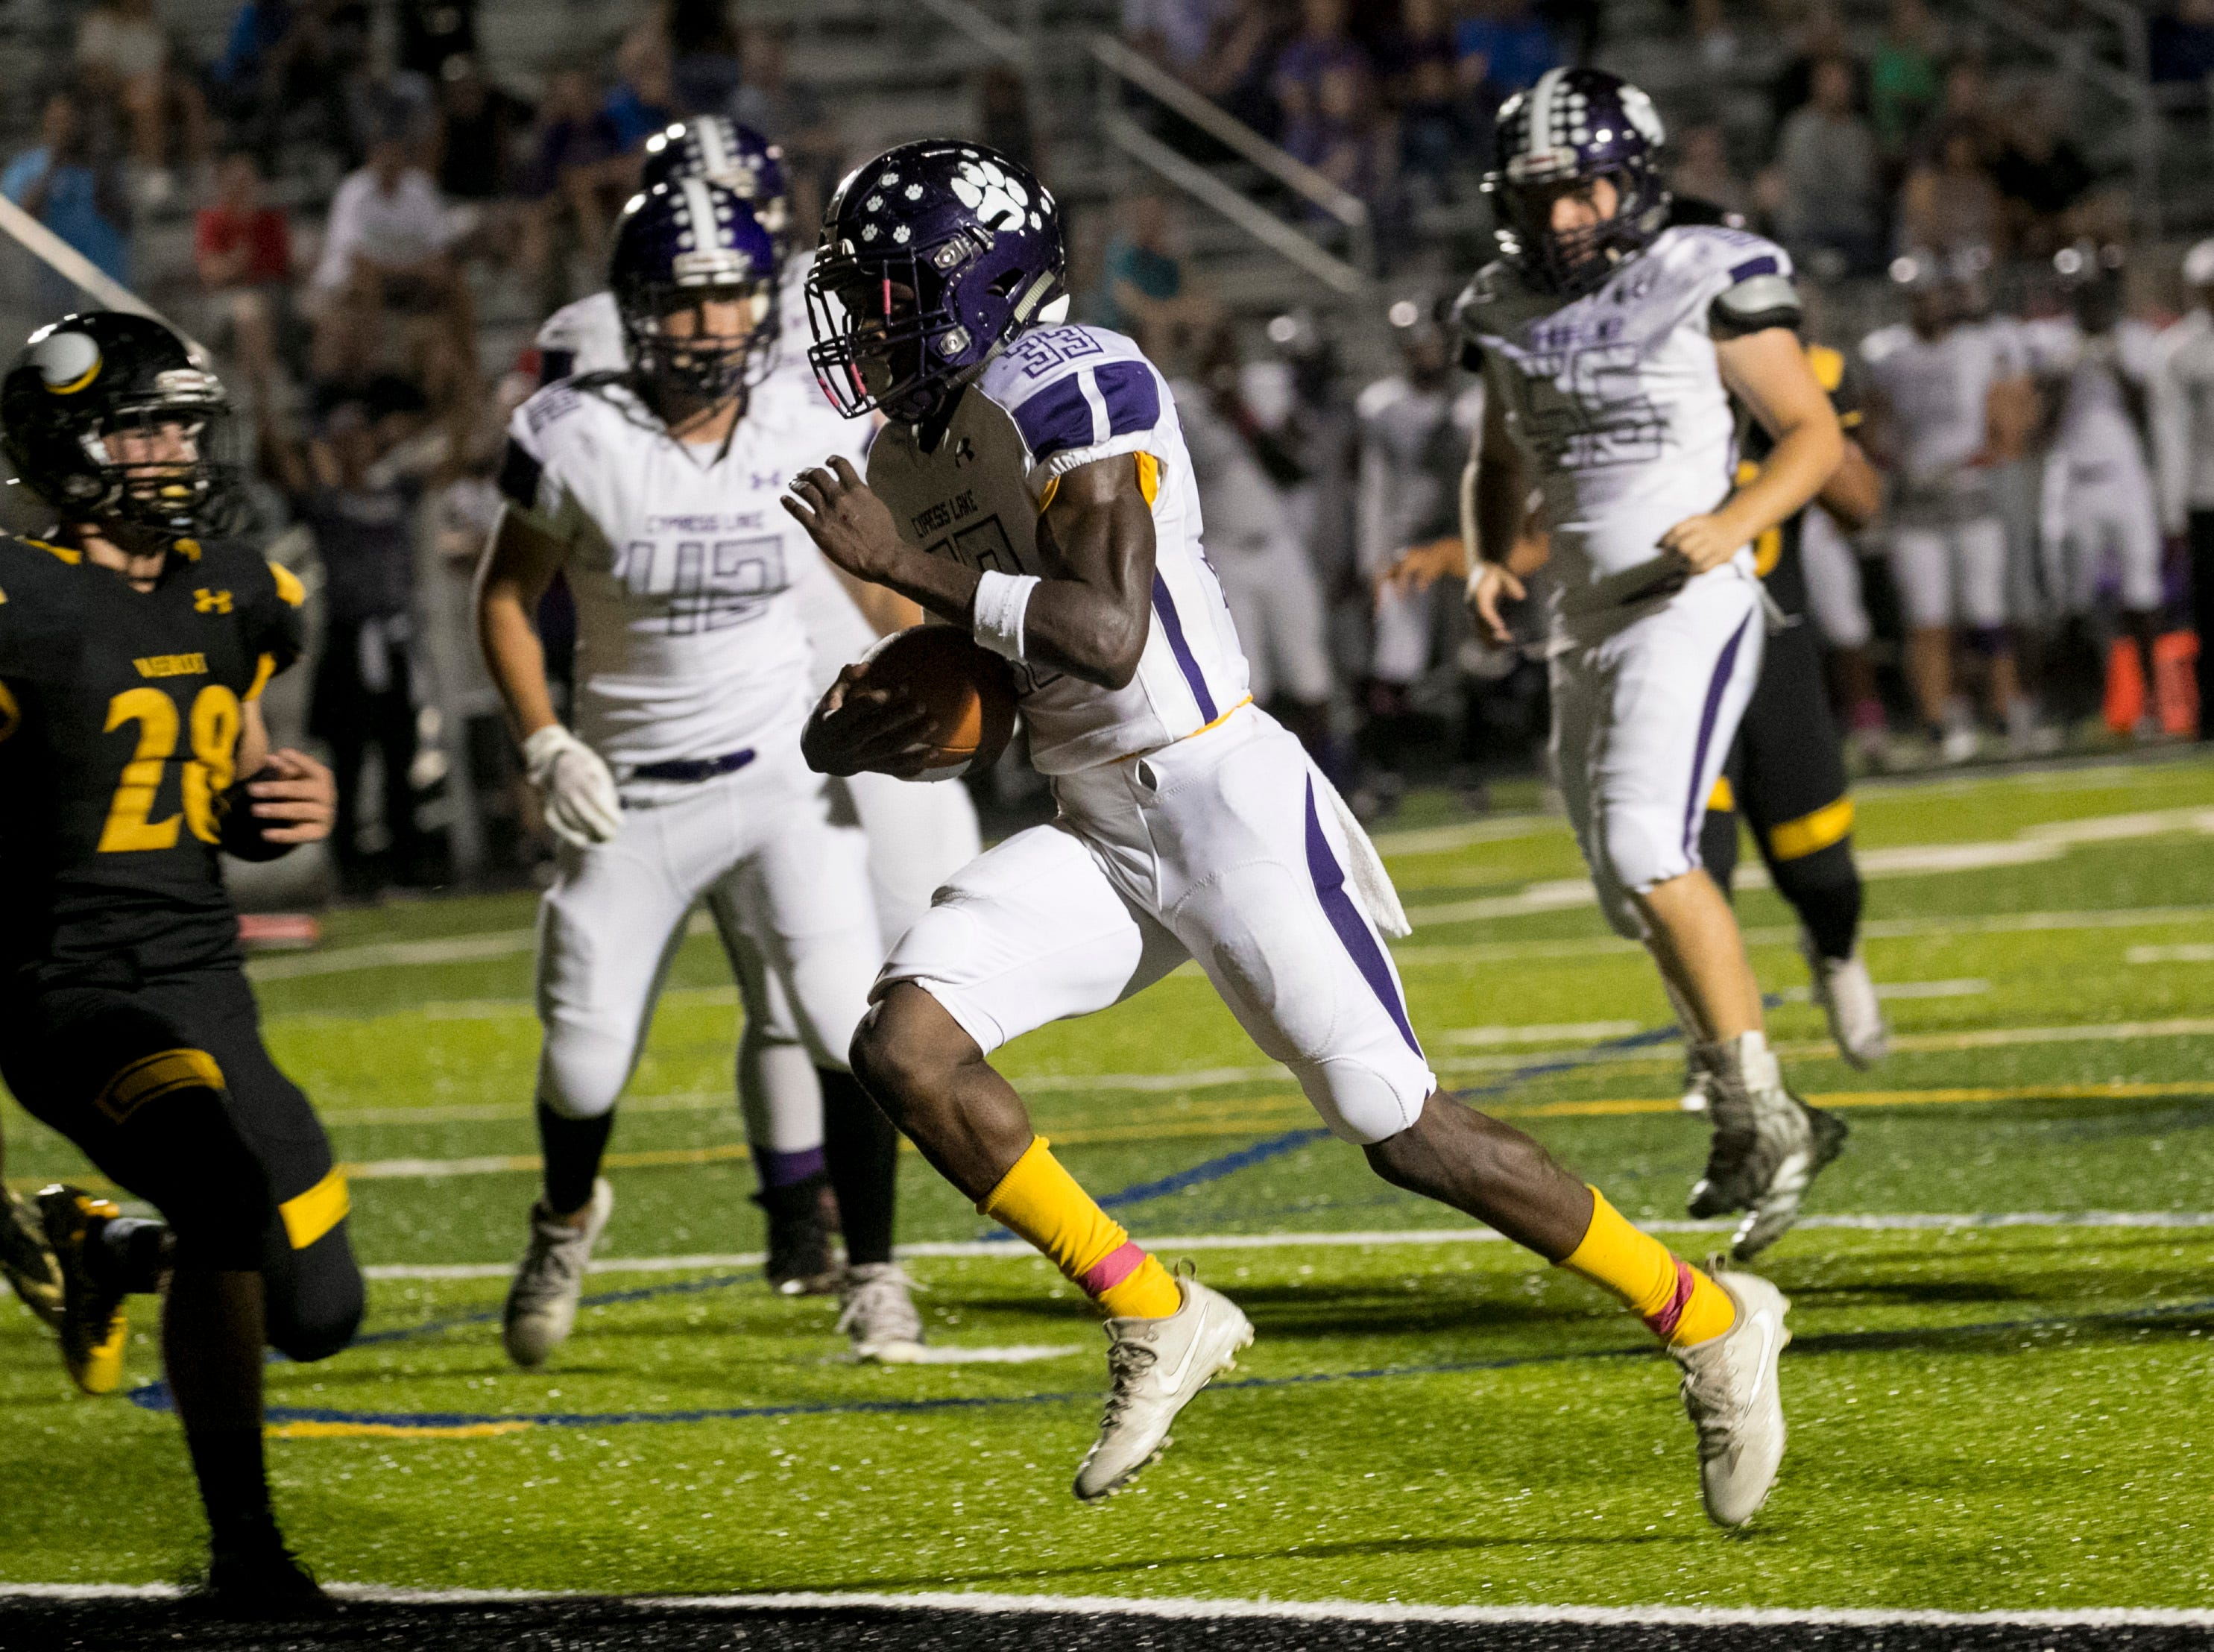 Chris Joseph of Cypress Lake runs in a touchdown against Bishop Verot on Friday night, October 5, 2018, at Bishop Verot High School.